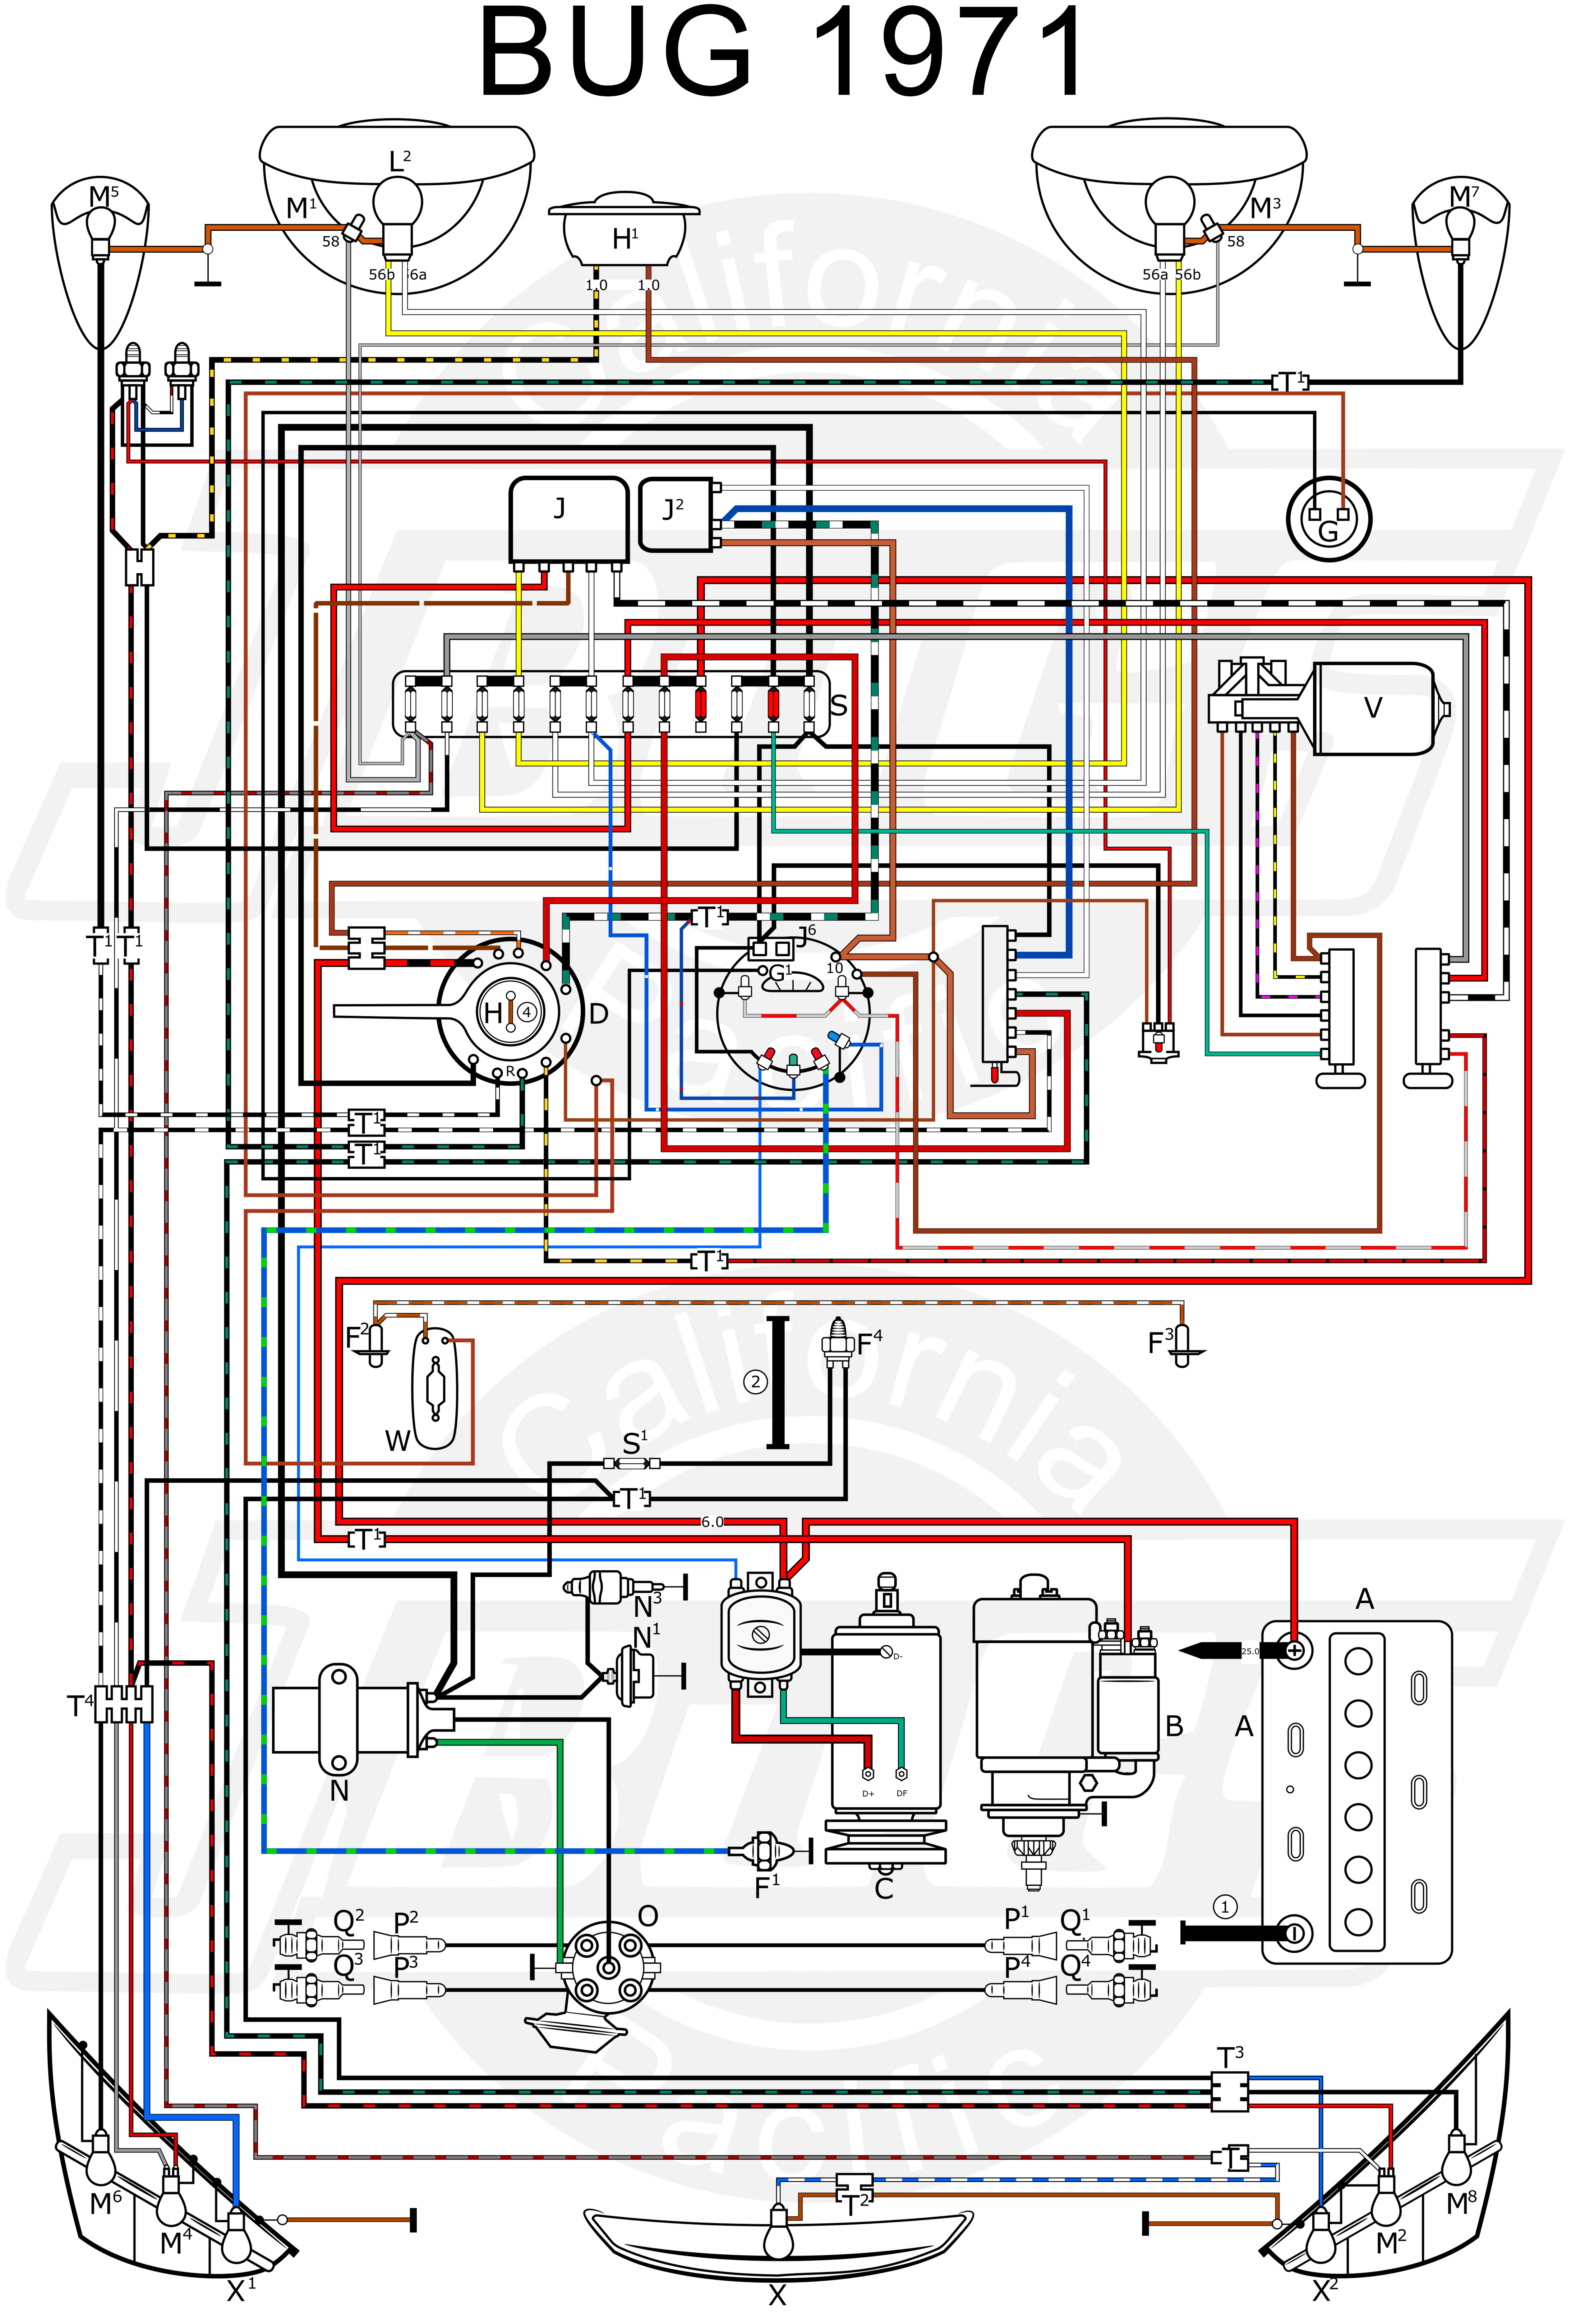 Vw Bug Wire Diagram - seniorsclub.it schematic-sweep - schematic -sweep.seniorsclub.itschematic-sweep.seniorsclub.it